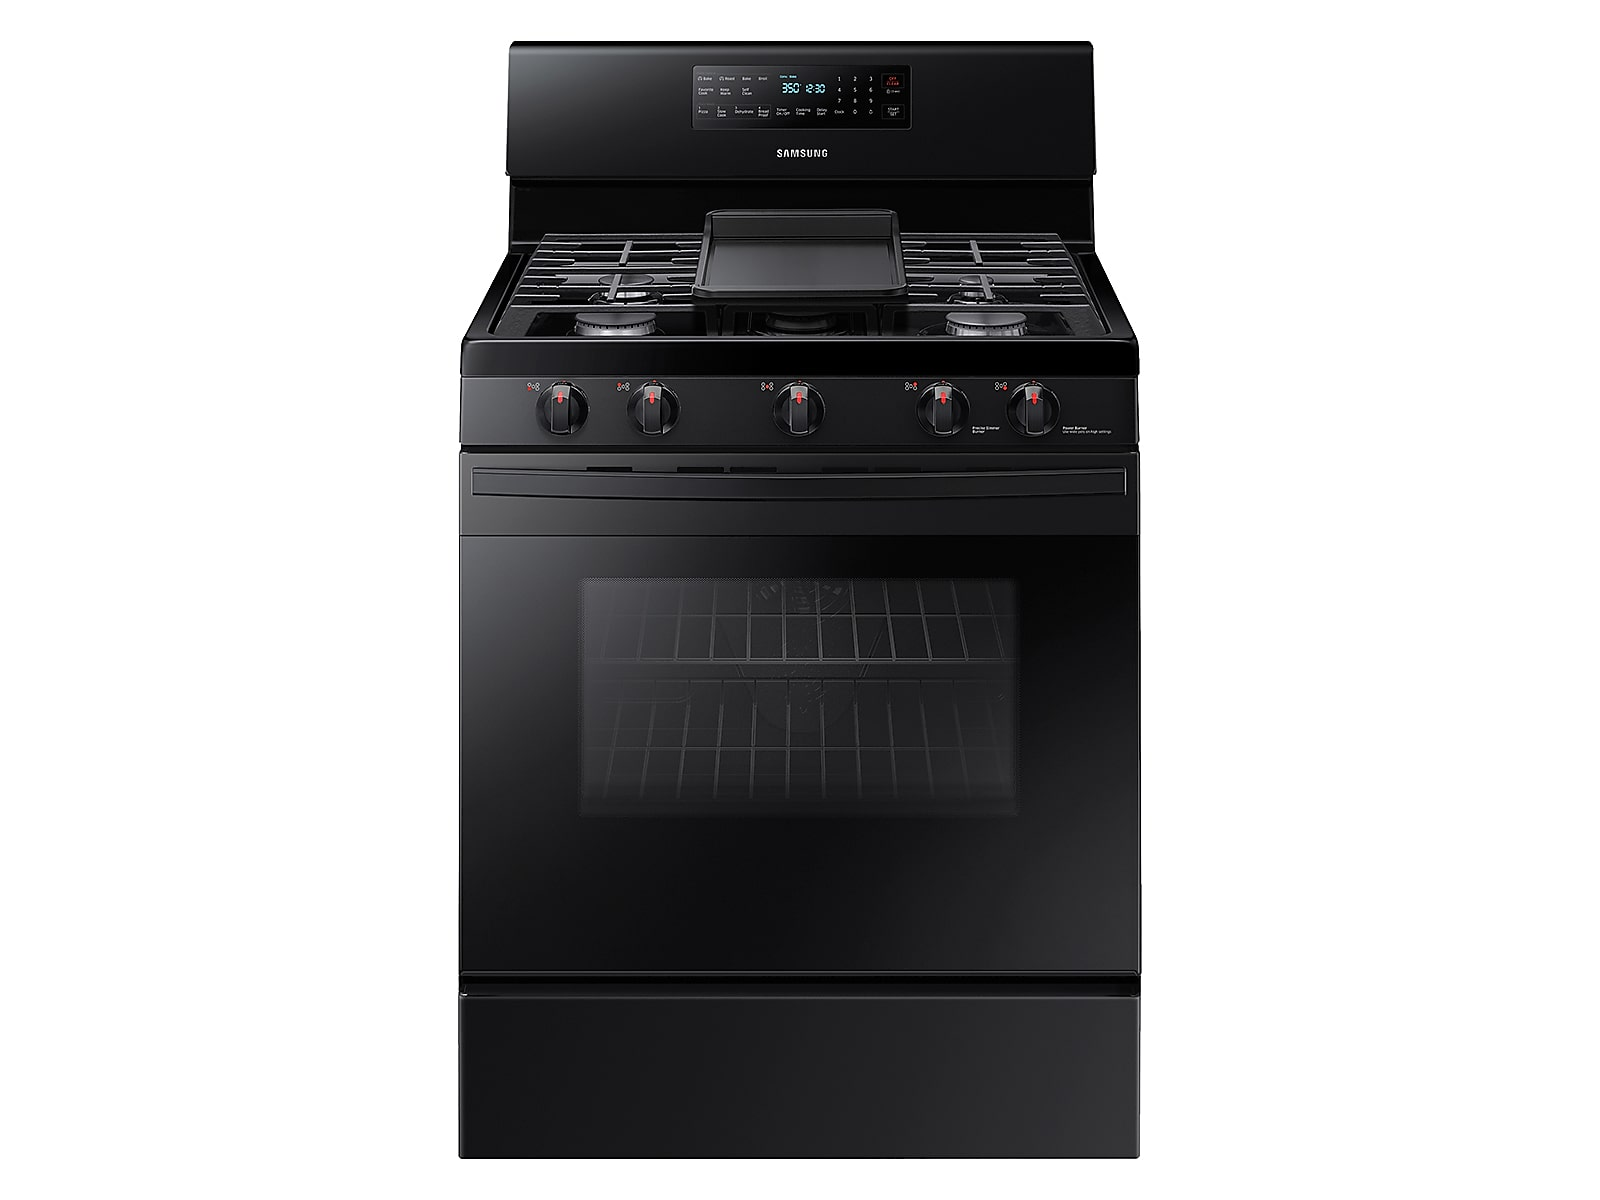 Samsung 5.8 cu. ft. Freestanding Gas Range with Convection in Black(NX58T5601SB/AA)